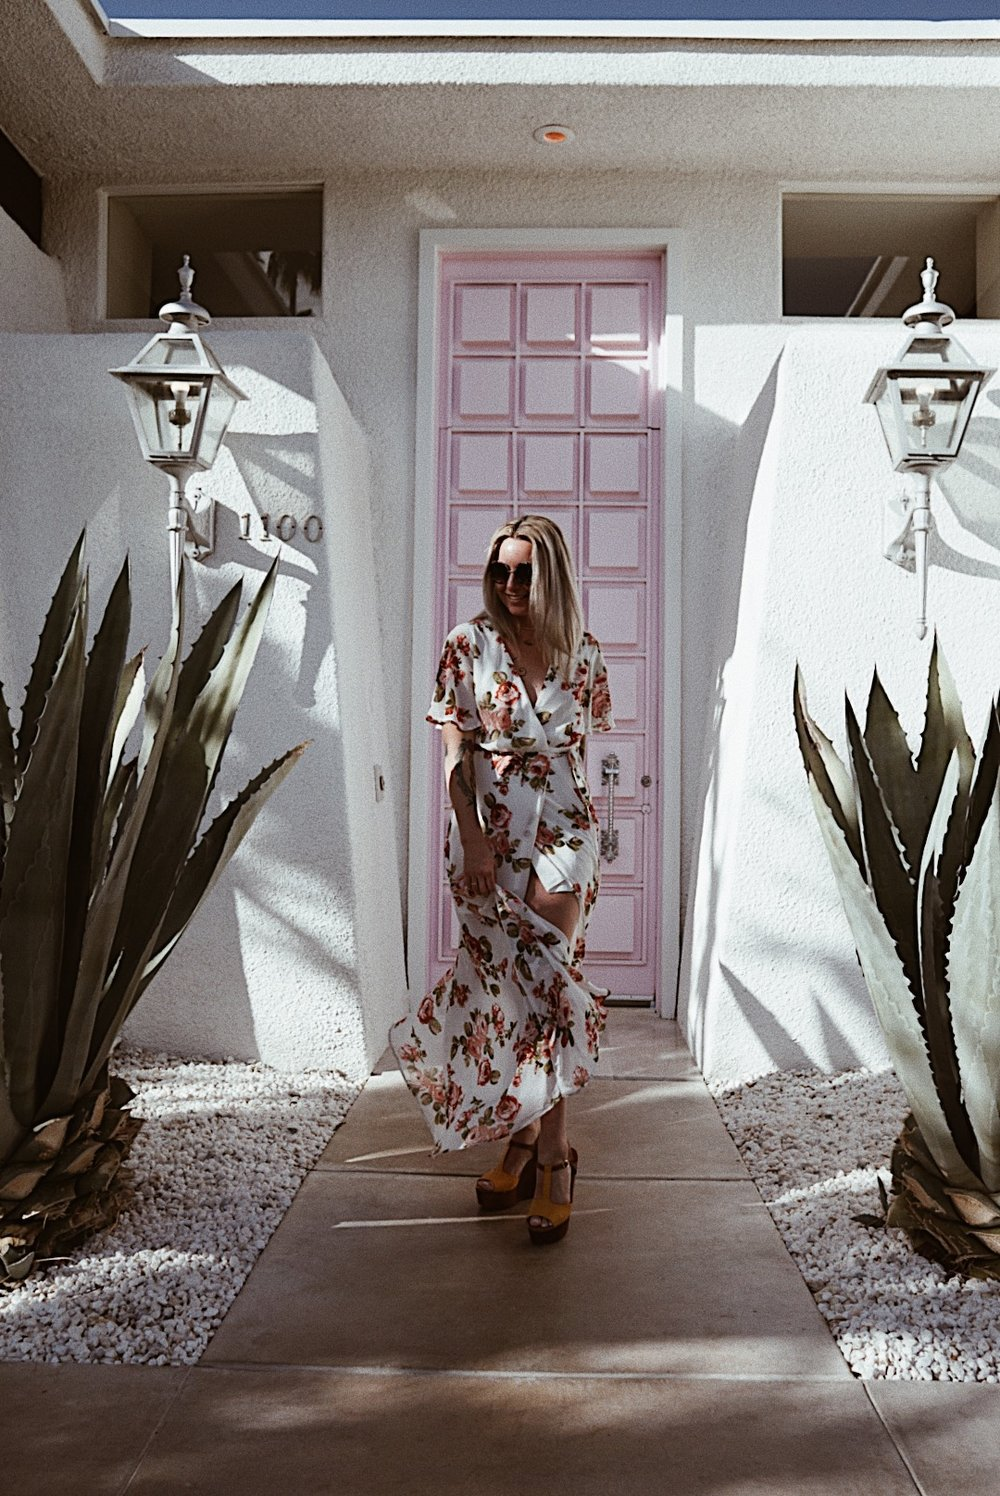 julia o test creative palm springs guide that pink door